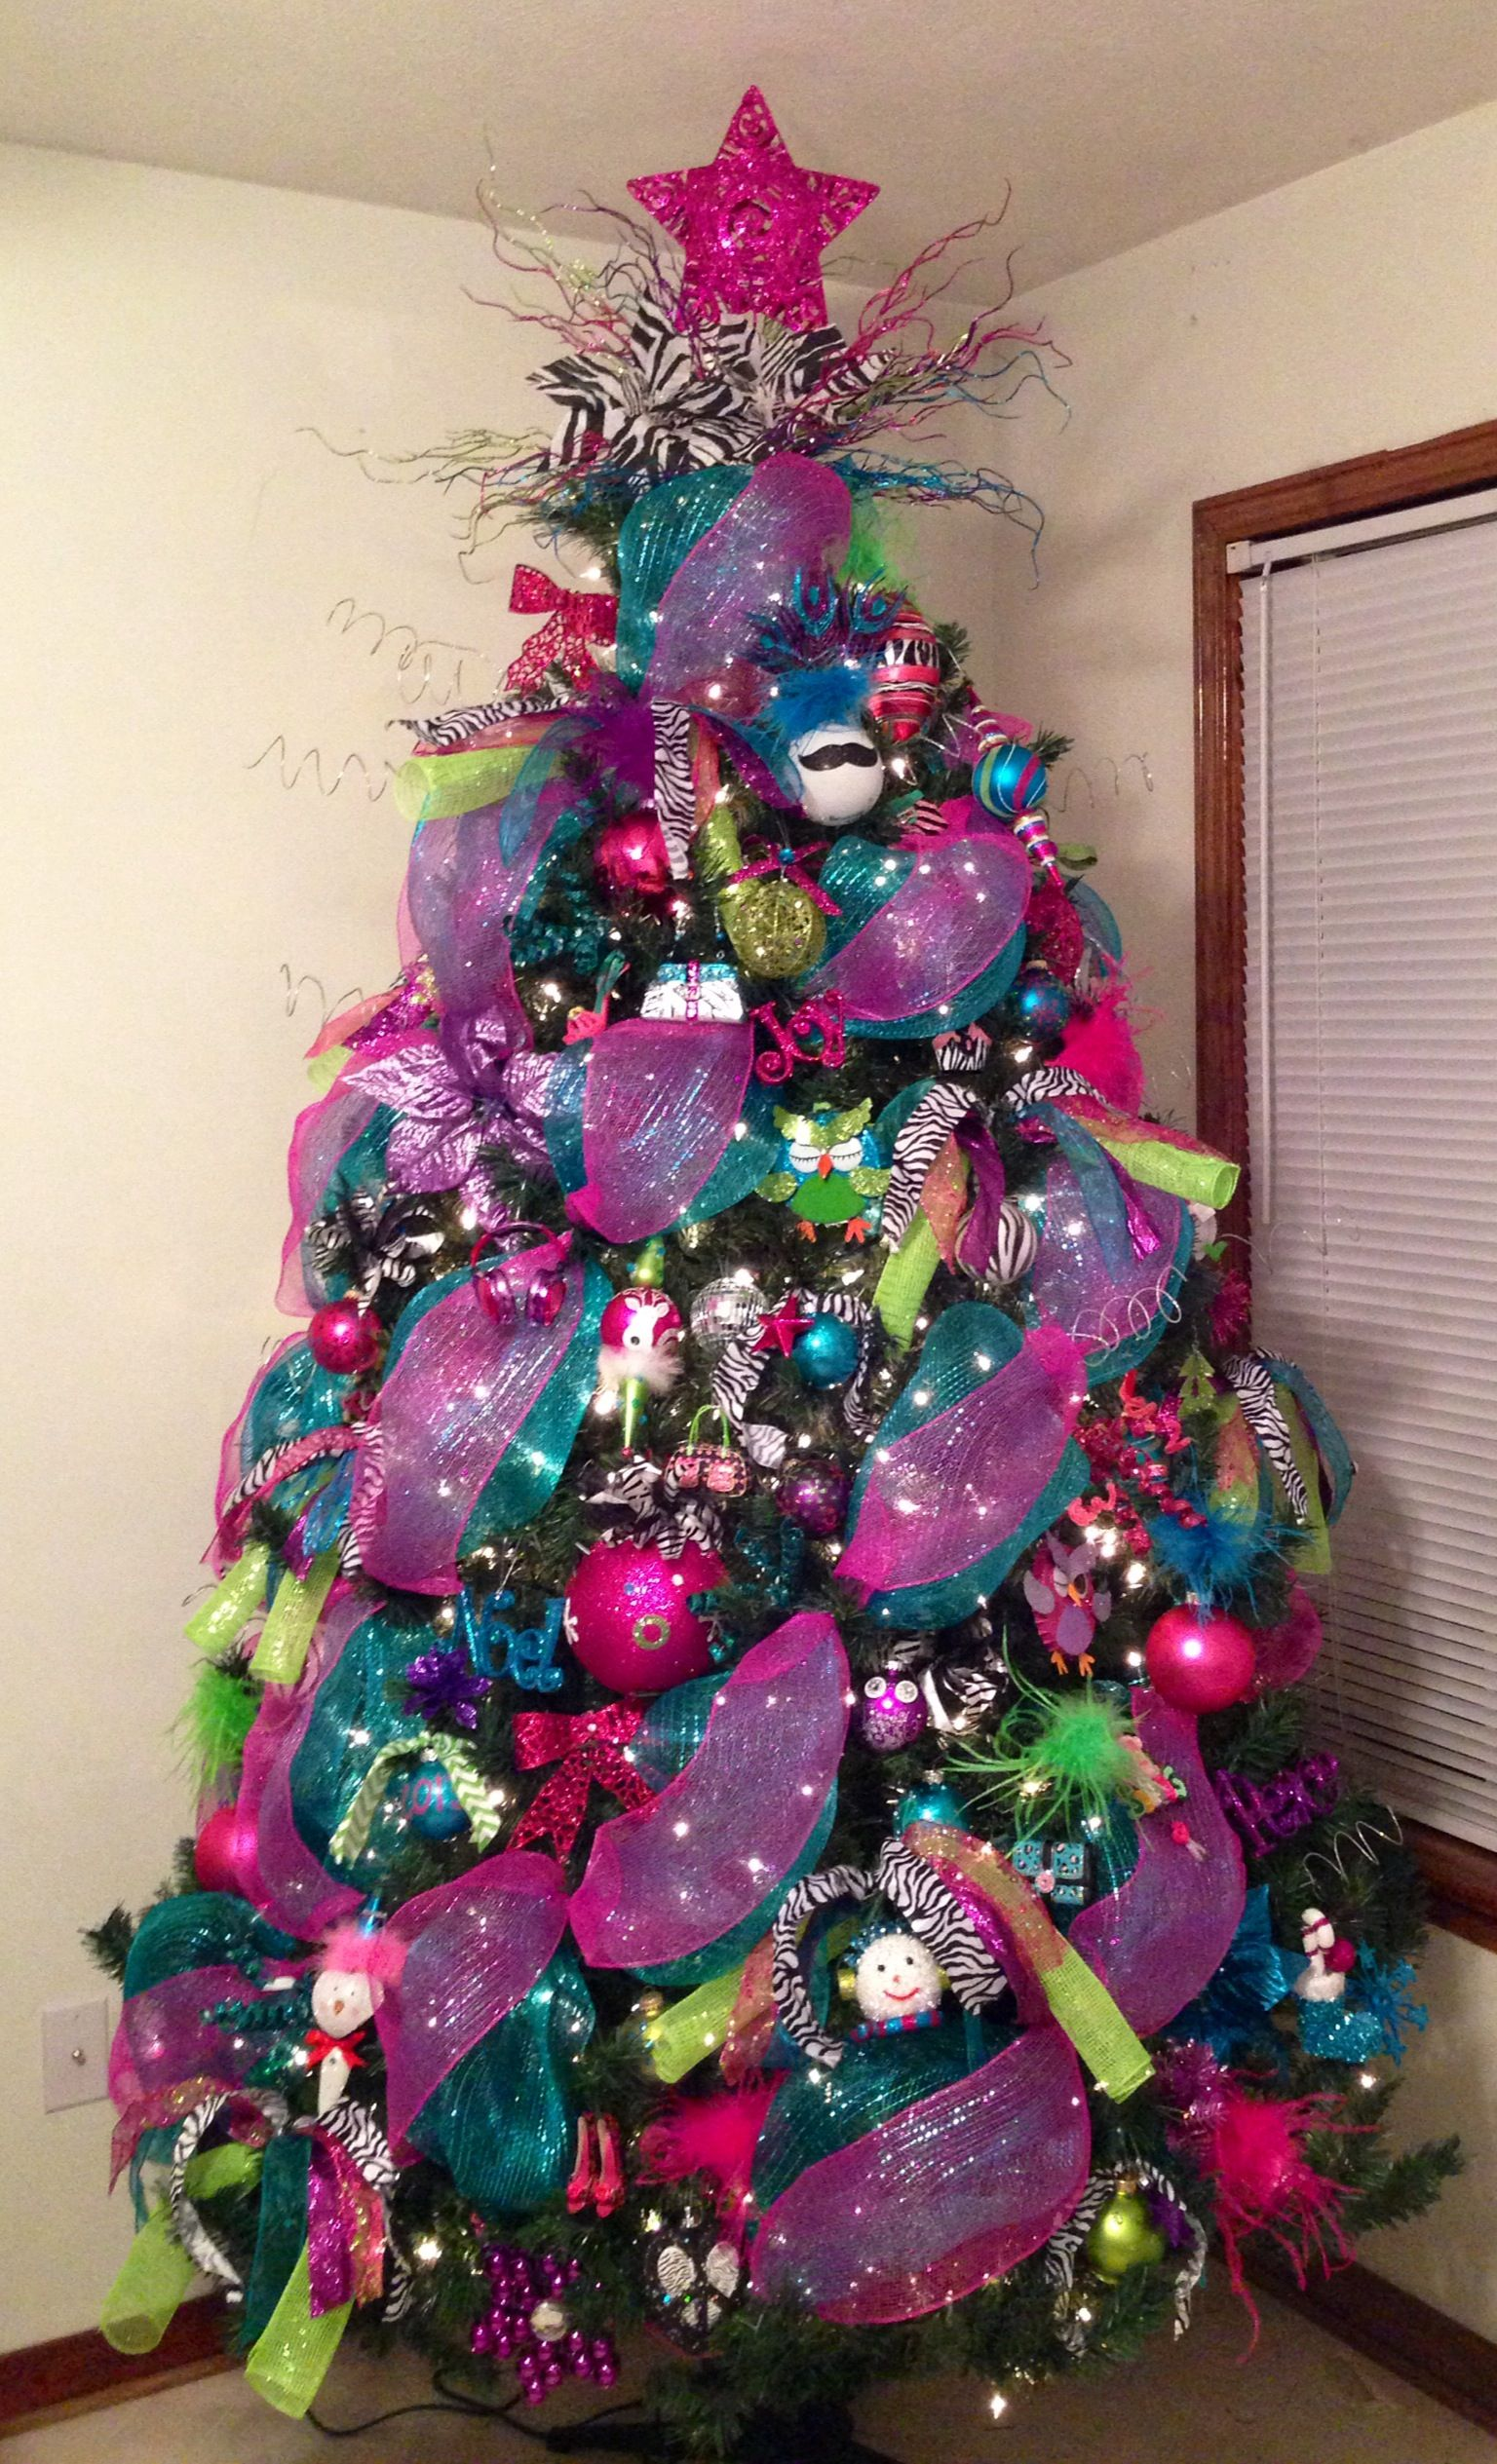 Big Lots Christmas Tree  Bold Colors With Accents Of Zebra Print (love The  Deco Mesh!